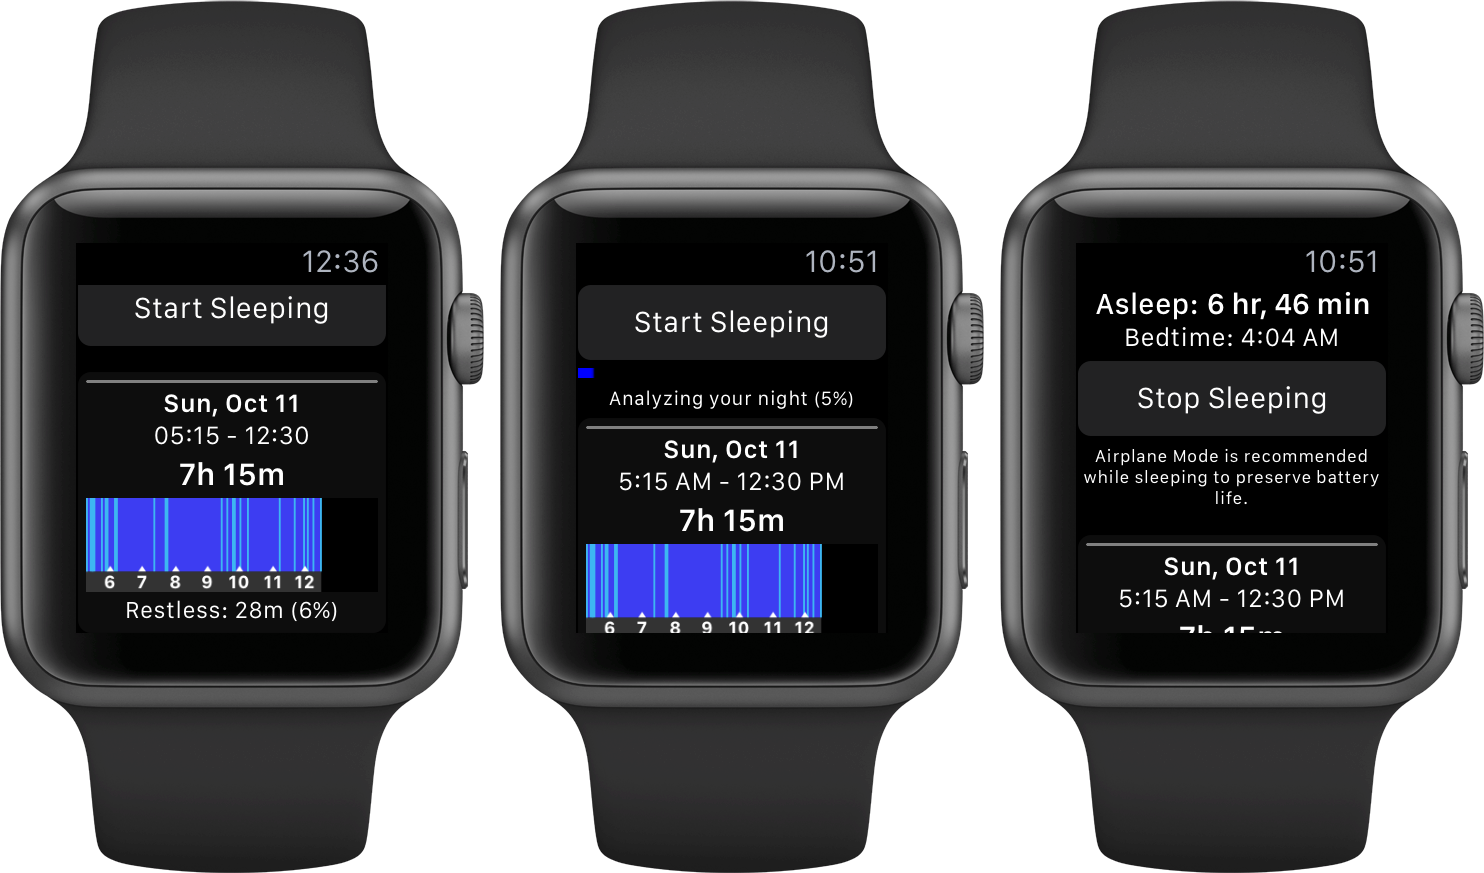 Sleep Plus for iOS Apple Watch screenshot 001